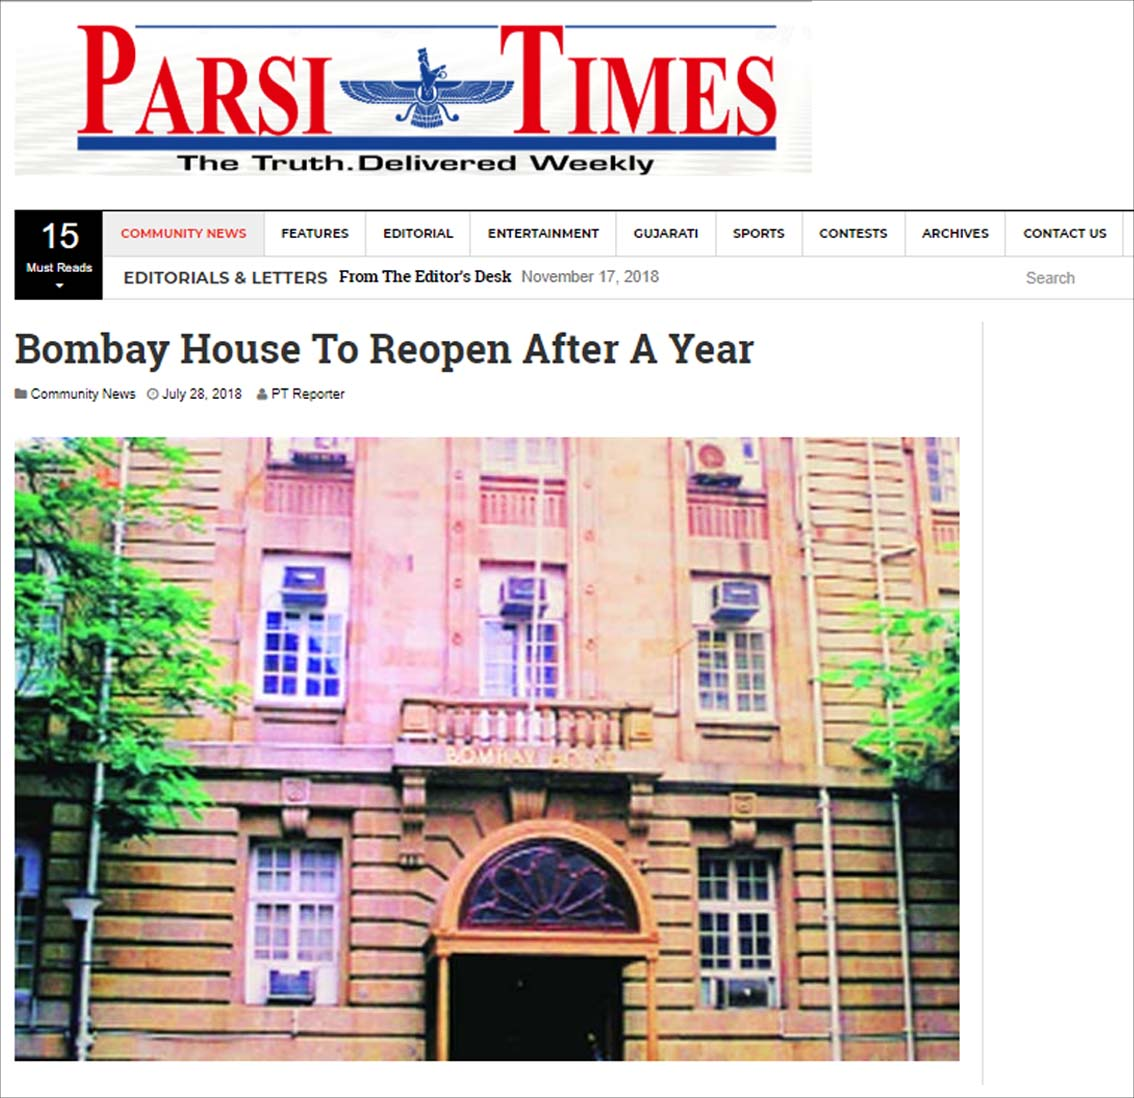 Bombay House To Reopen After A Year , Parsi Times - July 2018